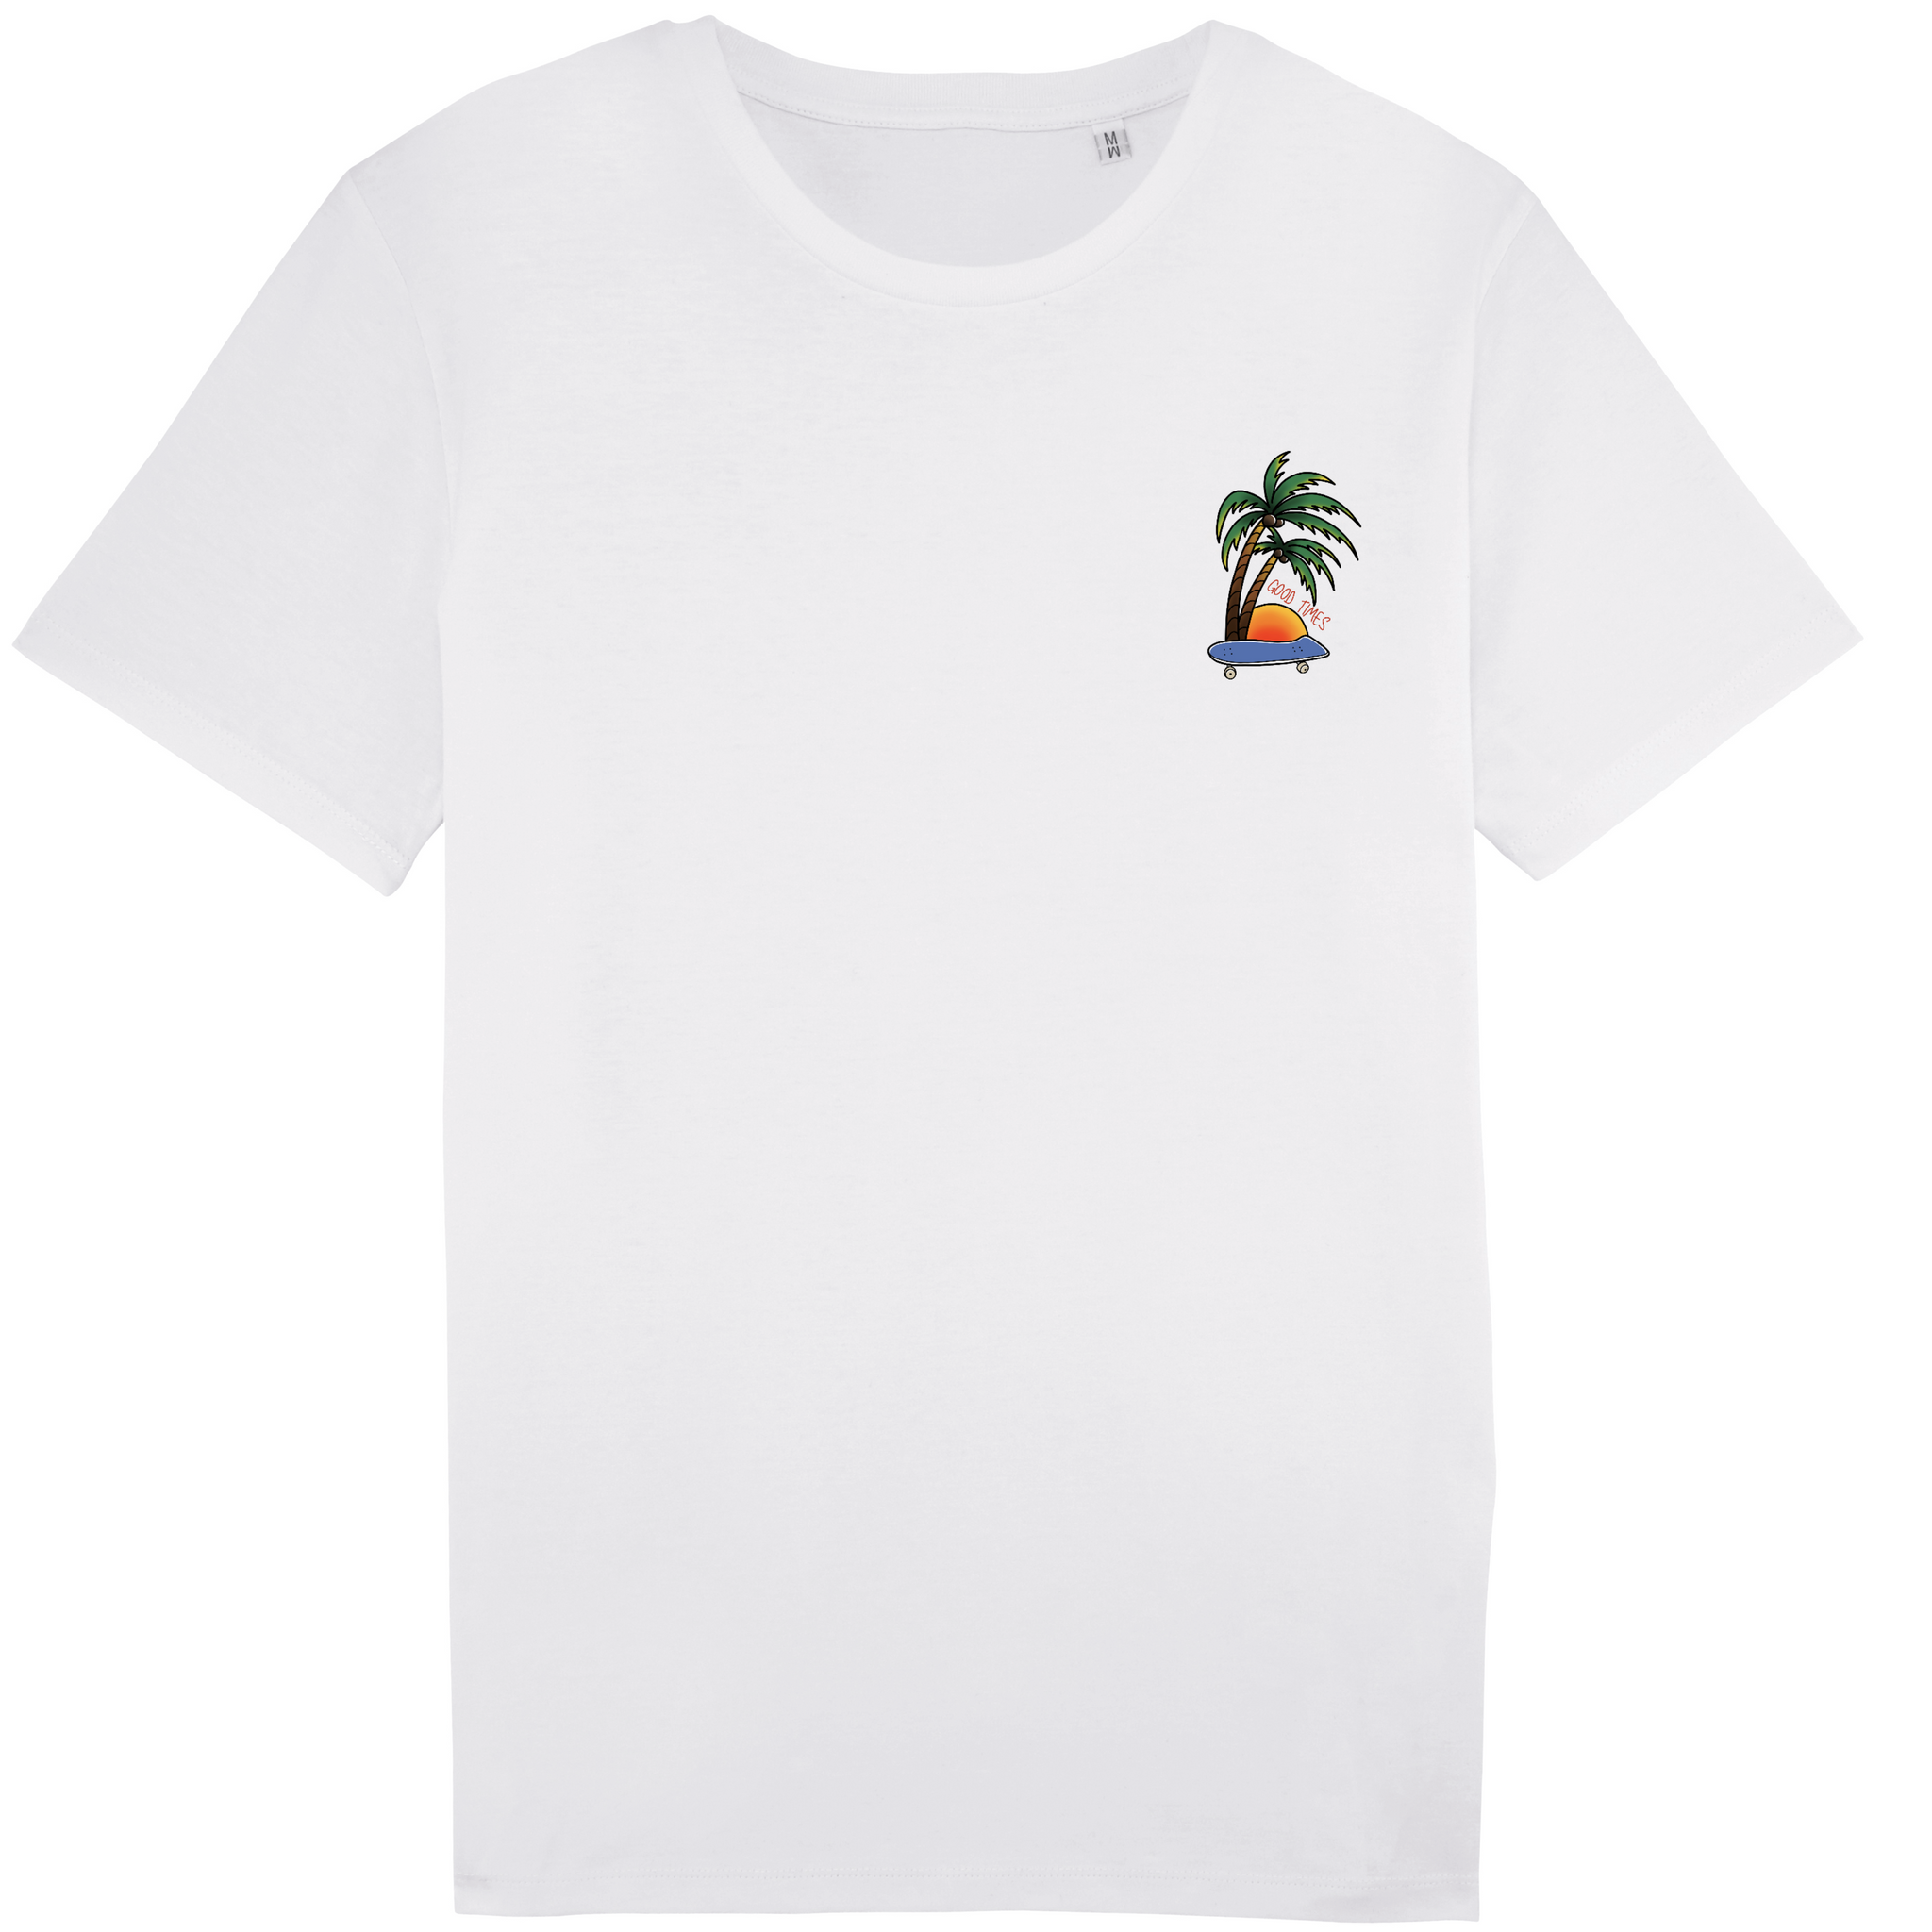 Youth Good Times tee white